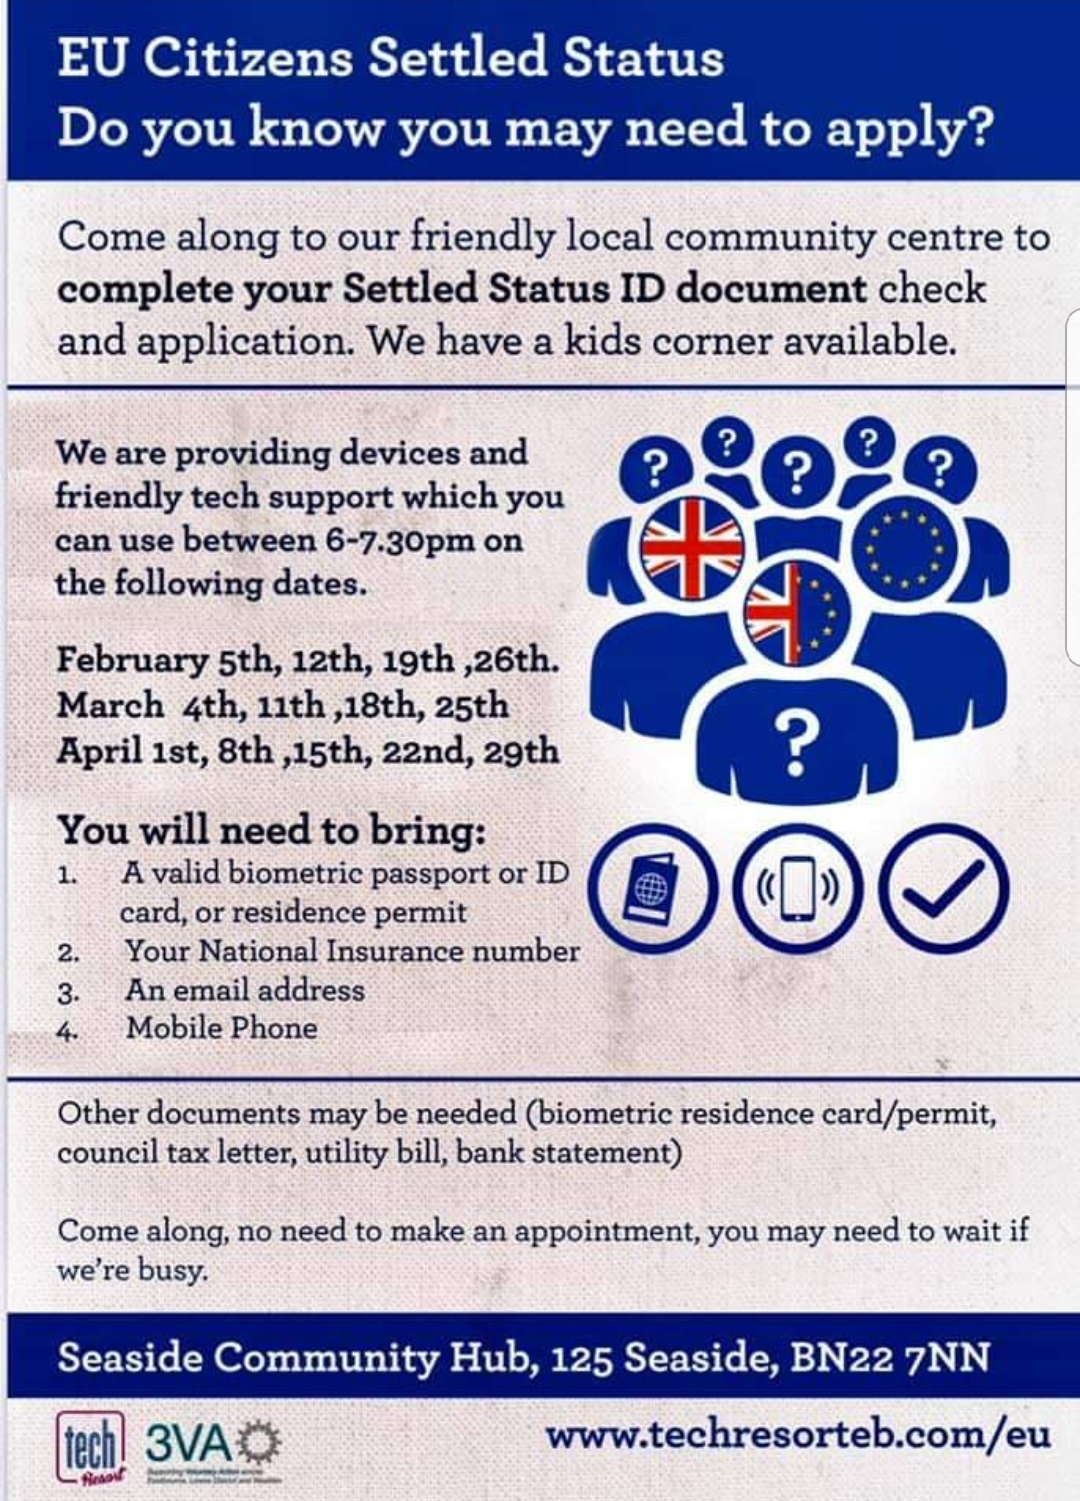 EU Citizen Settled Status : Do You Need To Apply? At Seaside Community Hub